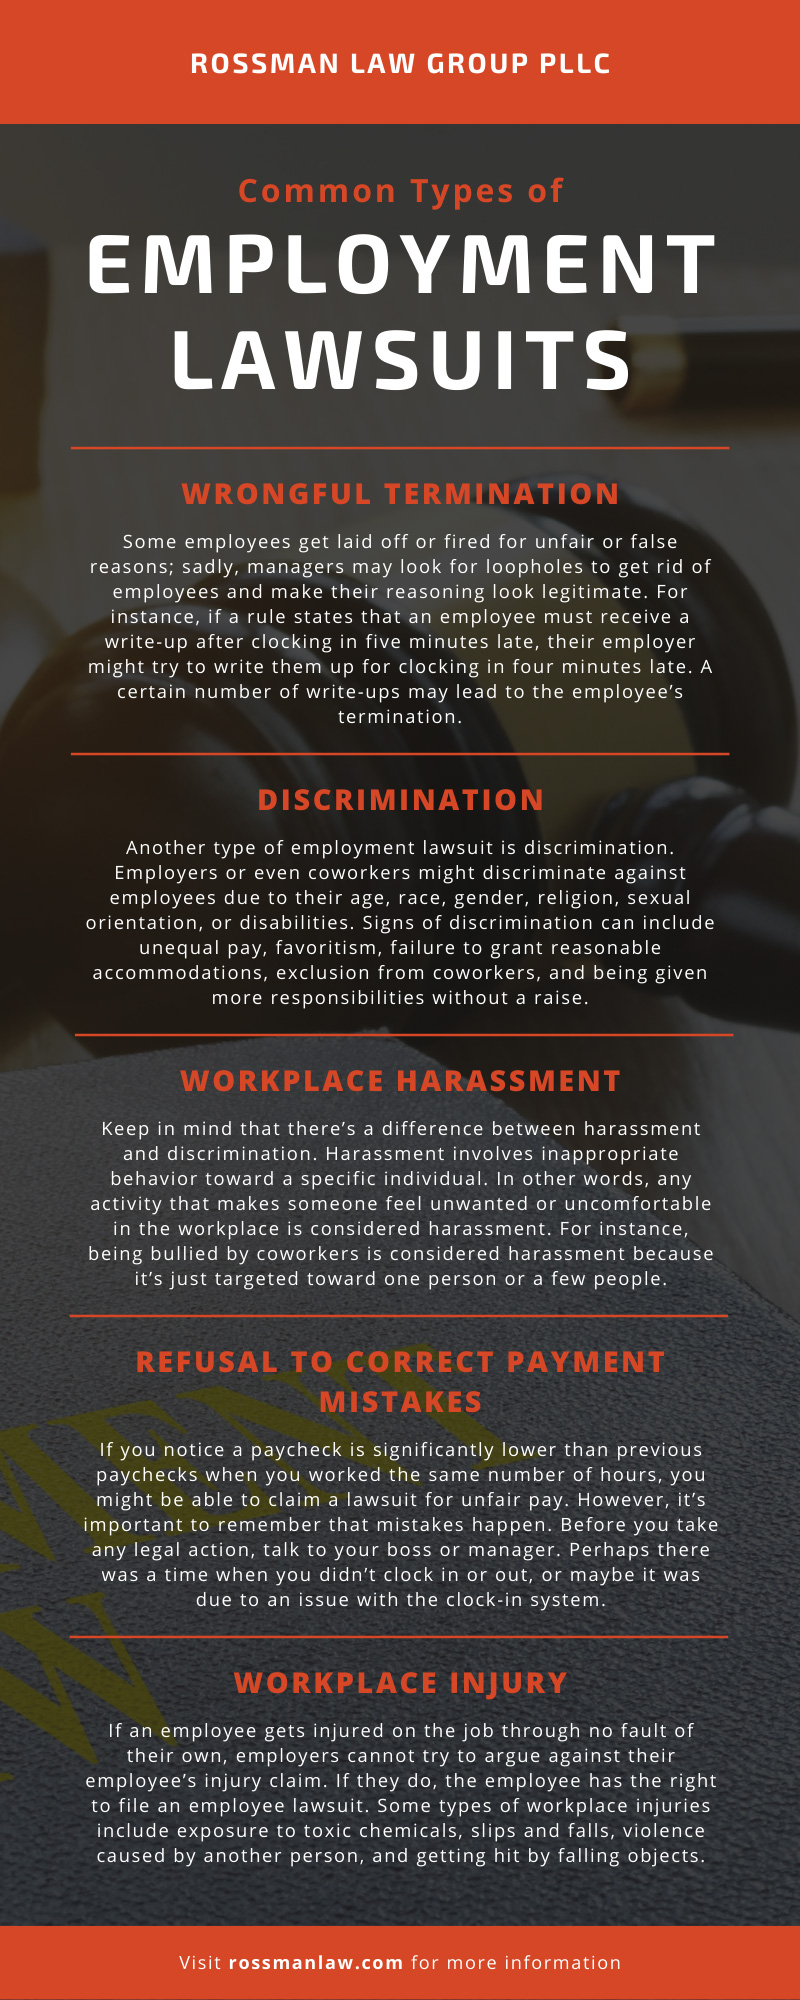 Types of Employment Lawsuits